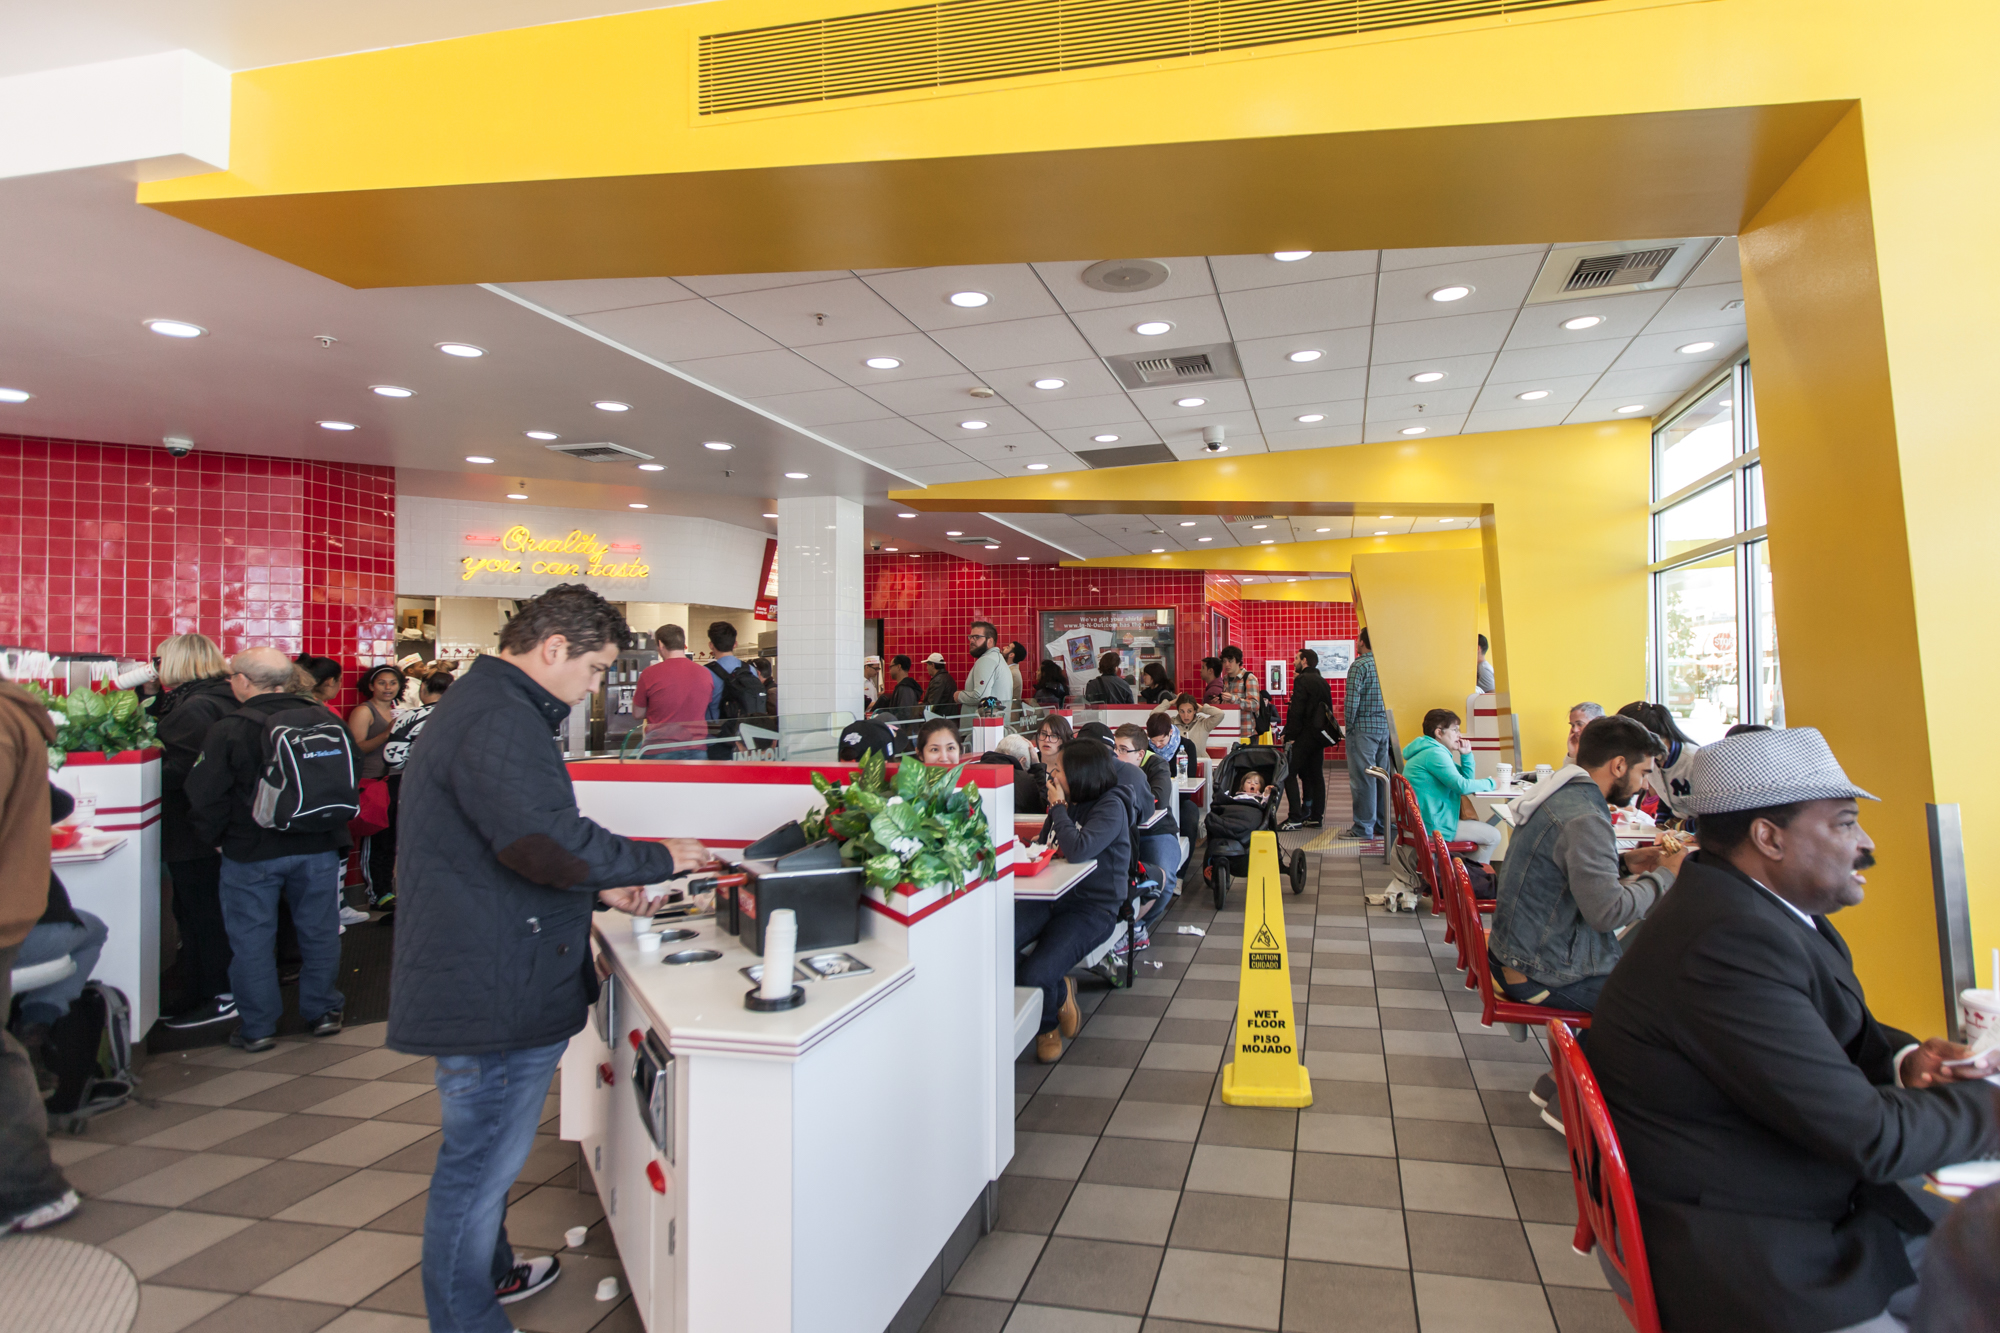 In-N-Out Burger at Fisherman's Wharf, Tuesday, 1 p m  - Eater SF